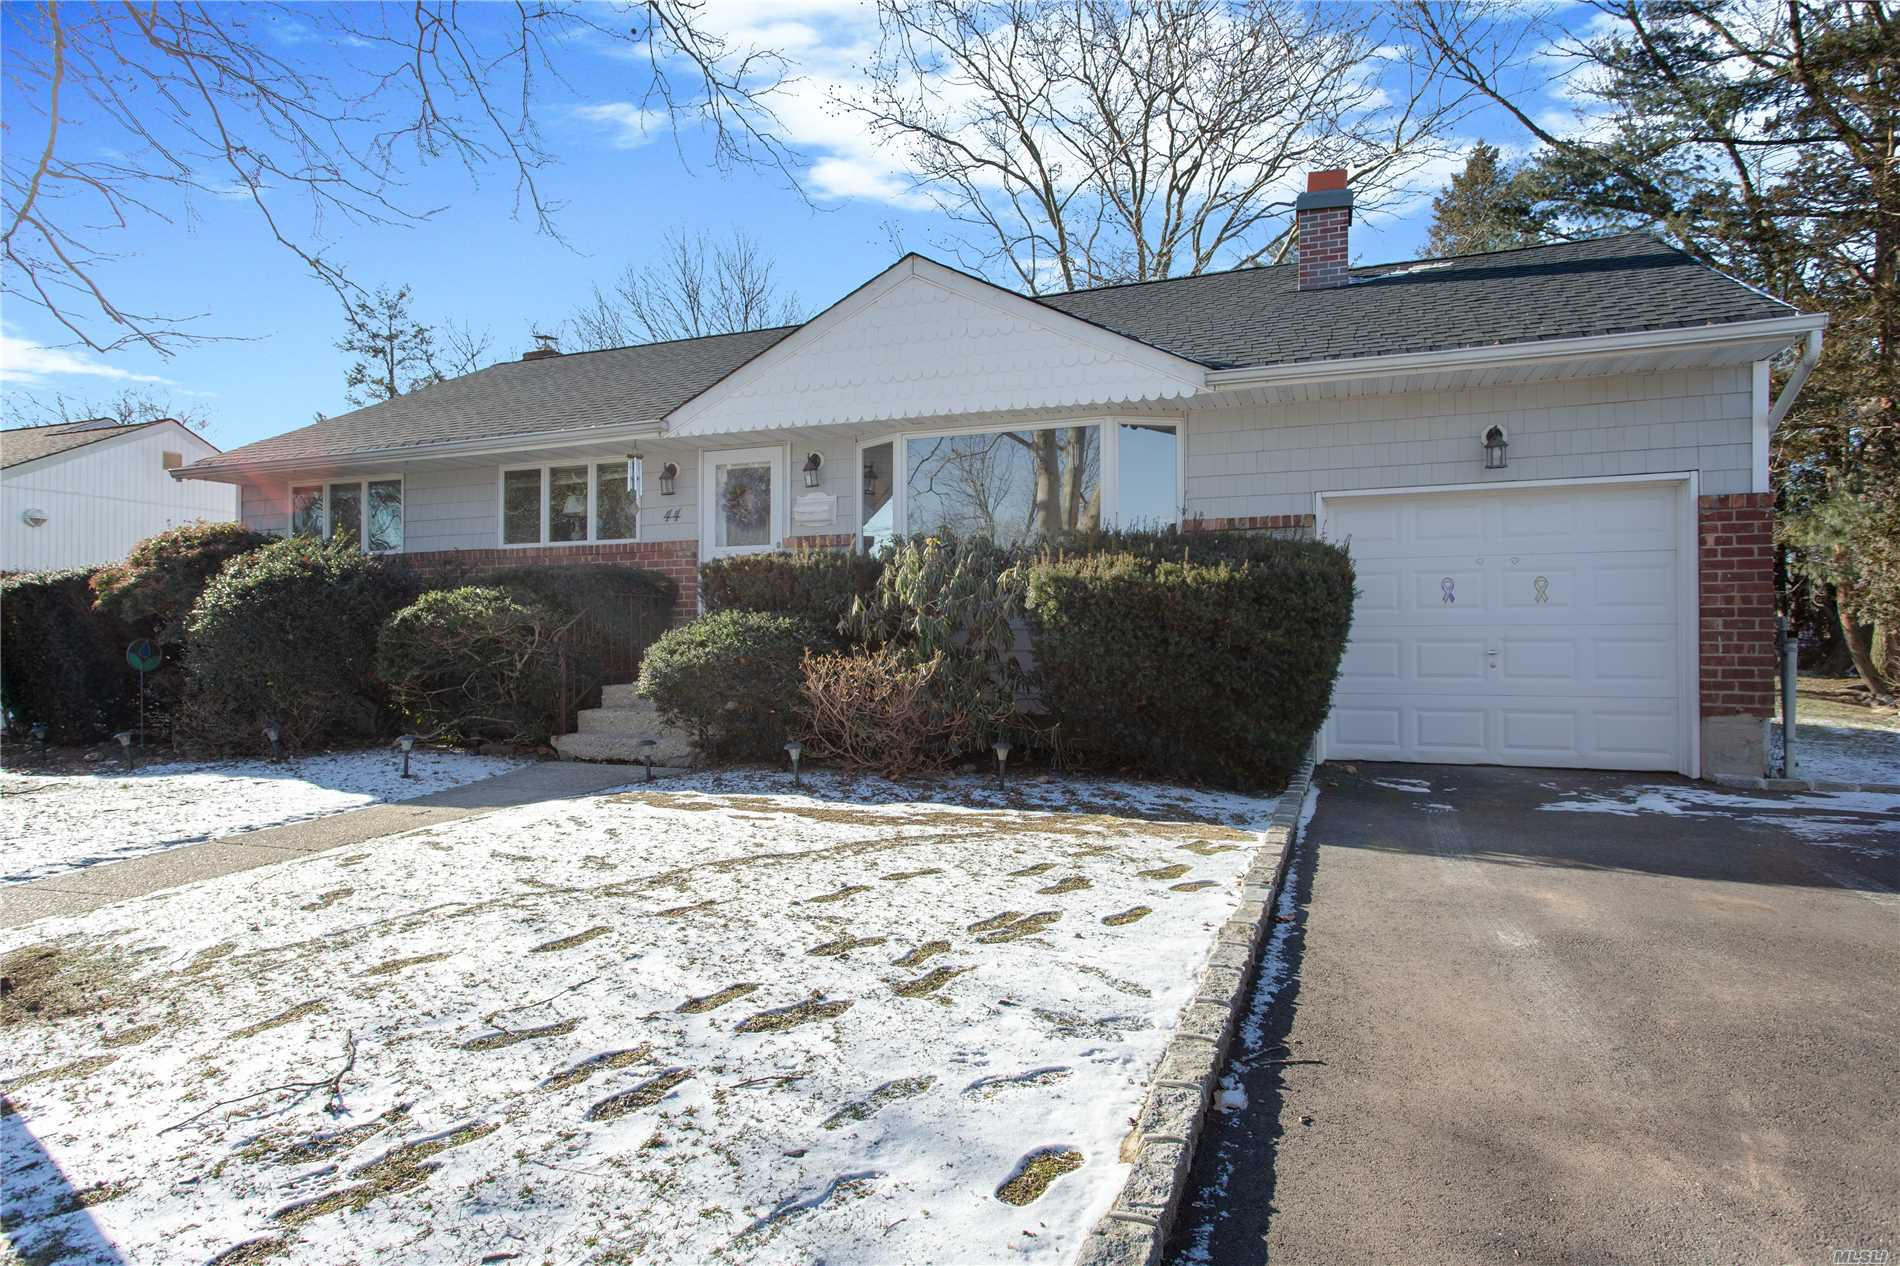 Beautiful 3 Bedroom Ranch, Living Room With Fireplace, Eik, Hardwood Floors, Full Finished Basement - Taxes $10, 115.39 With Star $8, 701.88 - Plainview-Old Bethpage S.D. Gas Line Ready For Hook Up On Side Of House